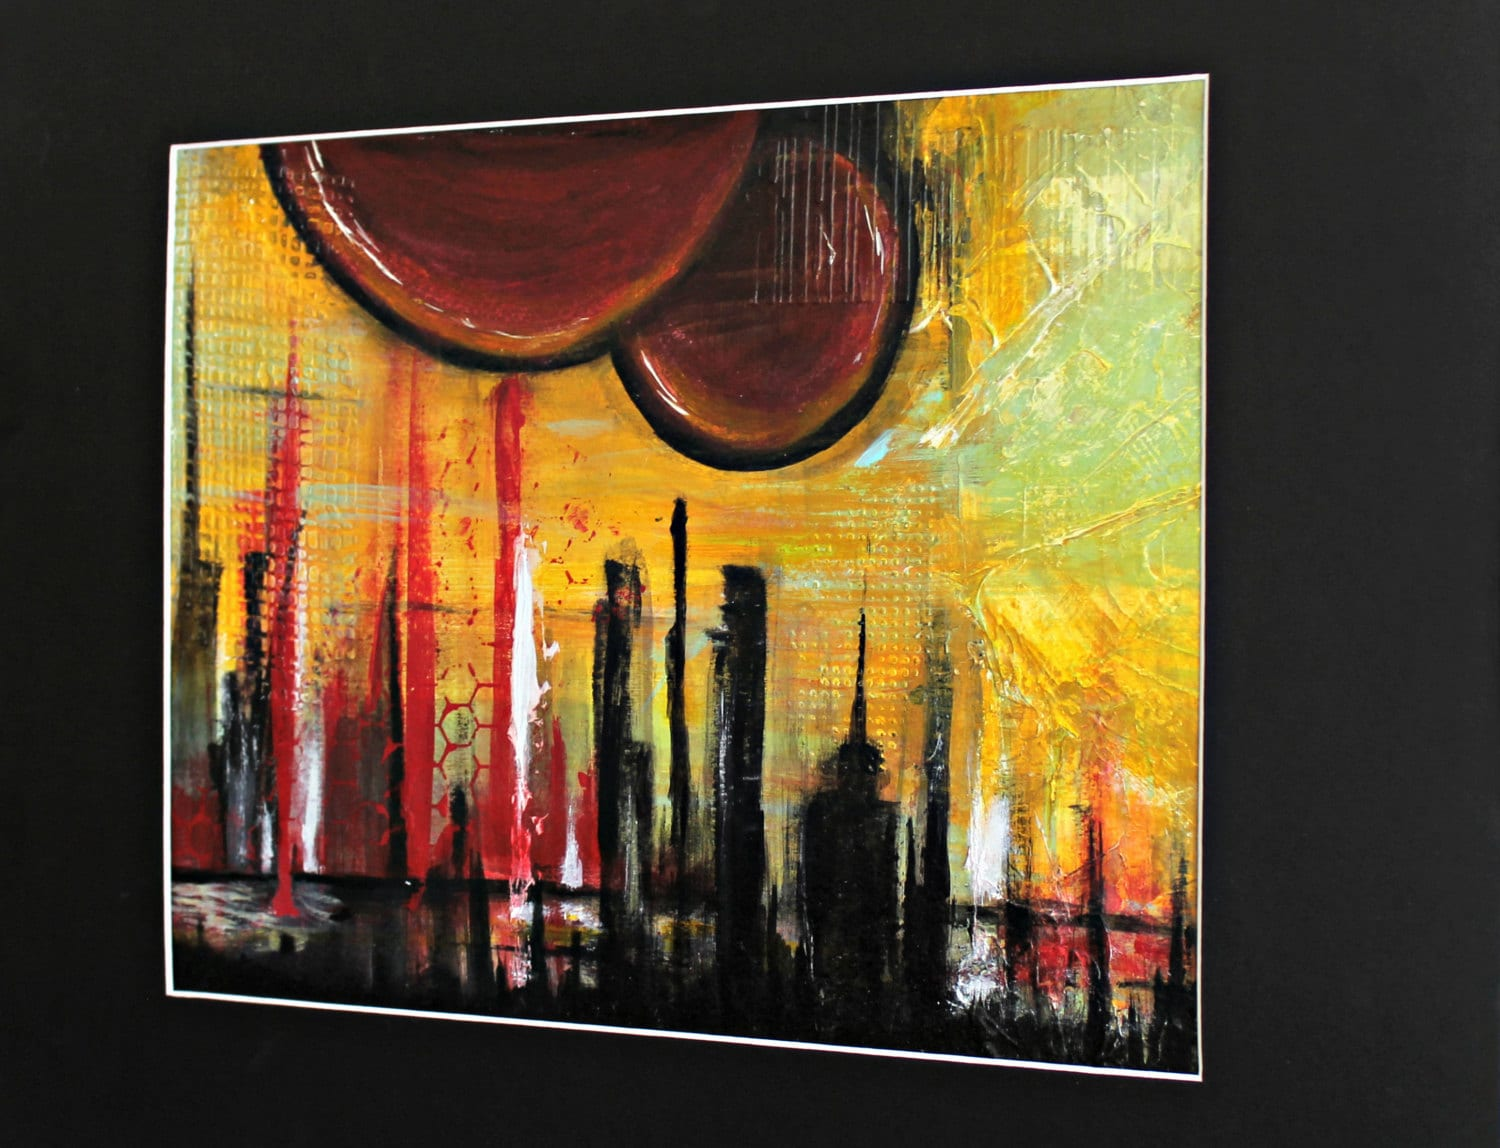 Abstract Acrylic Painting By Crystal Renee. Original Art